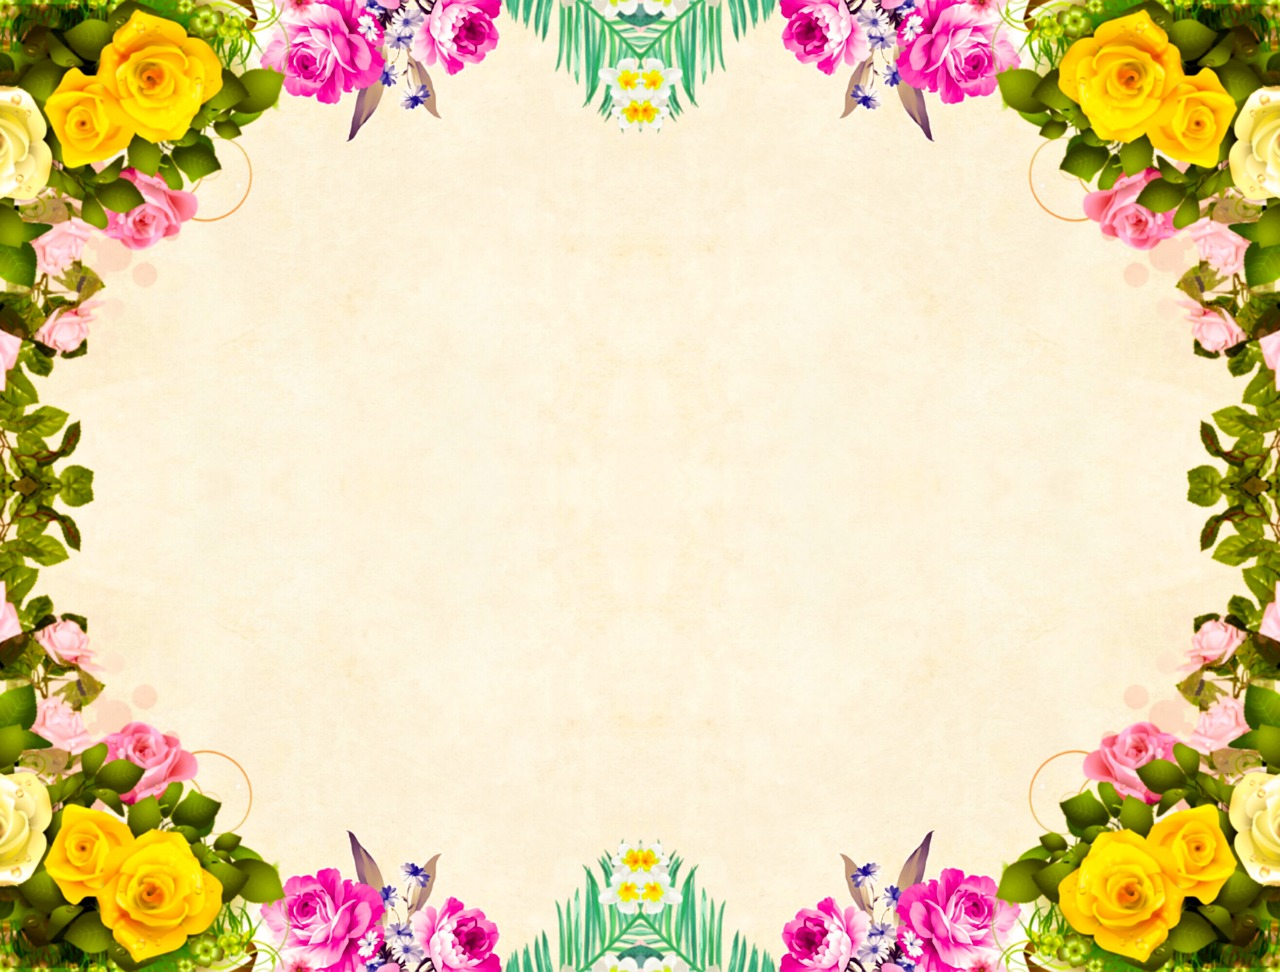 Flower Background Floral Vintage Roses Free Image From Needpix Com